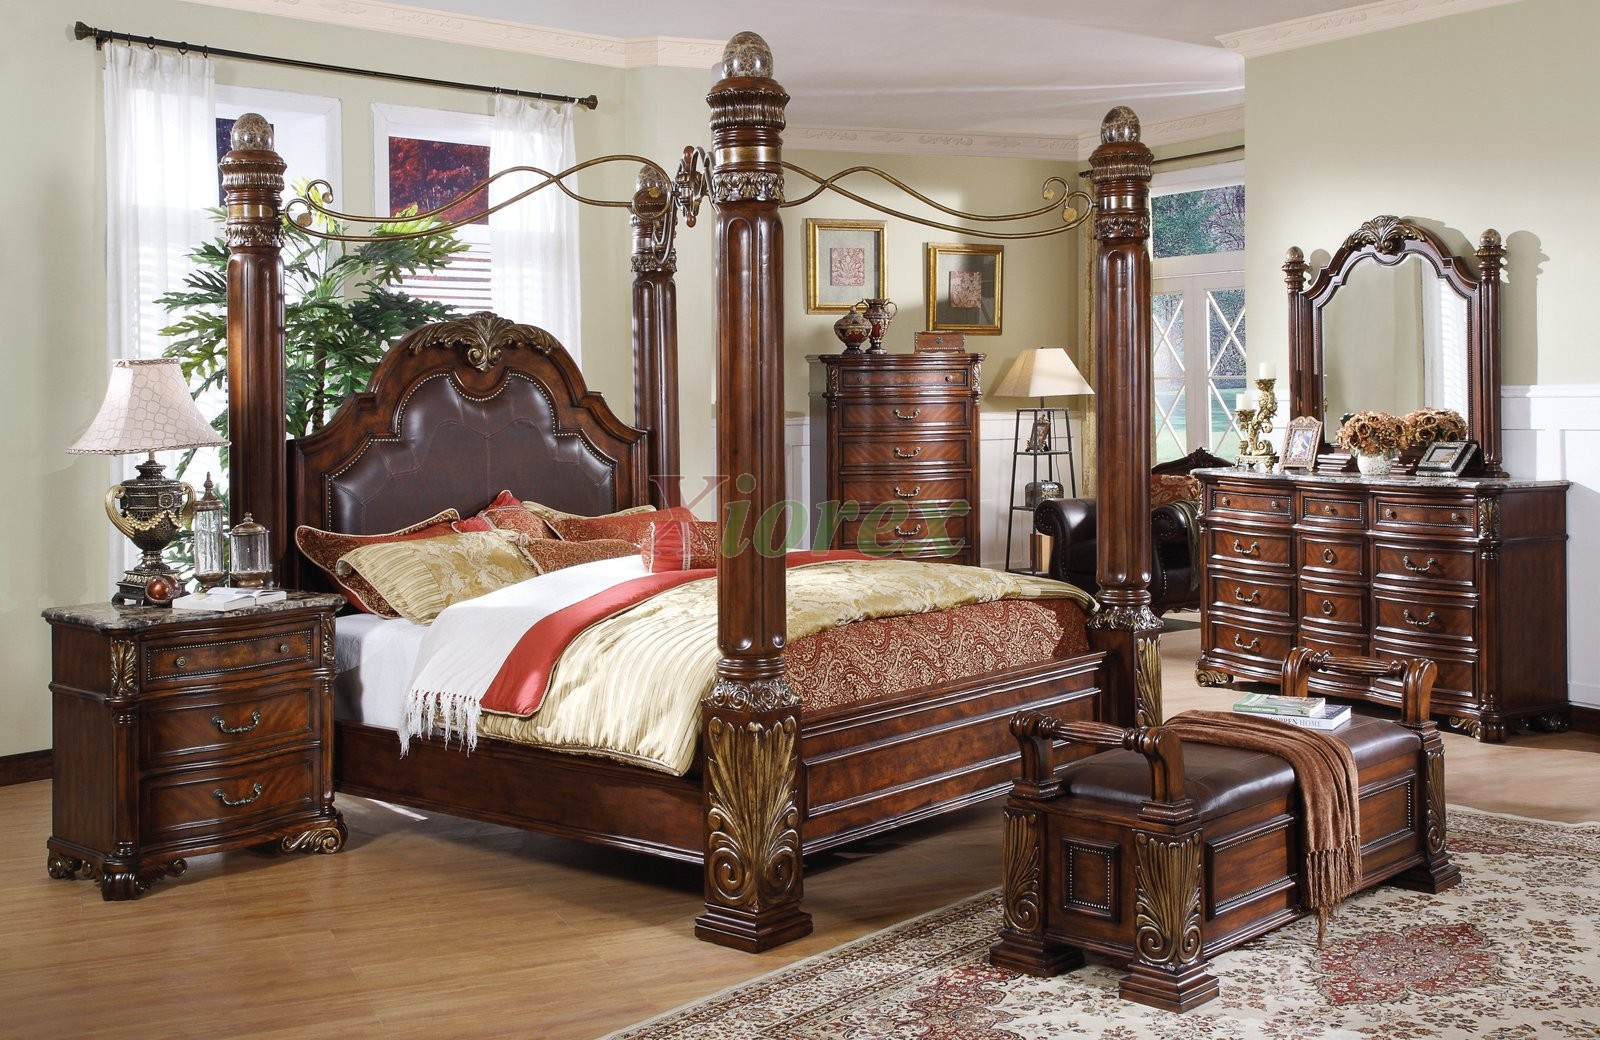 Poster Bedroom Set w Metal Canopy u0026 Leather Headboard Queen and King Beds ... & Canopy Bed Sets Bedroom Furniture Sets w Poster Canopy Beds 100 ...